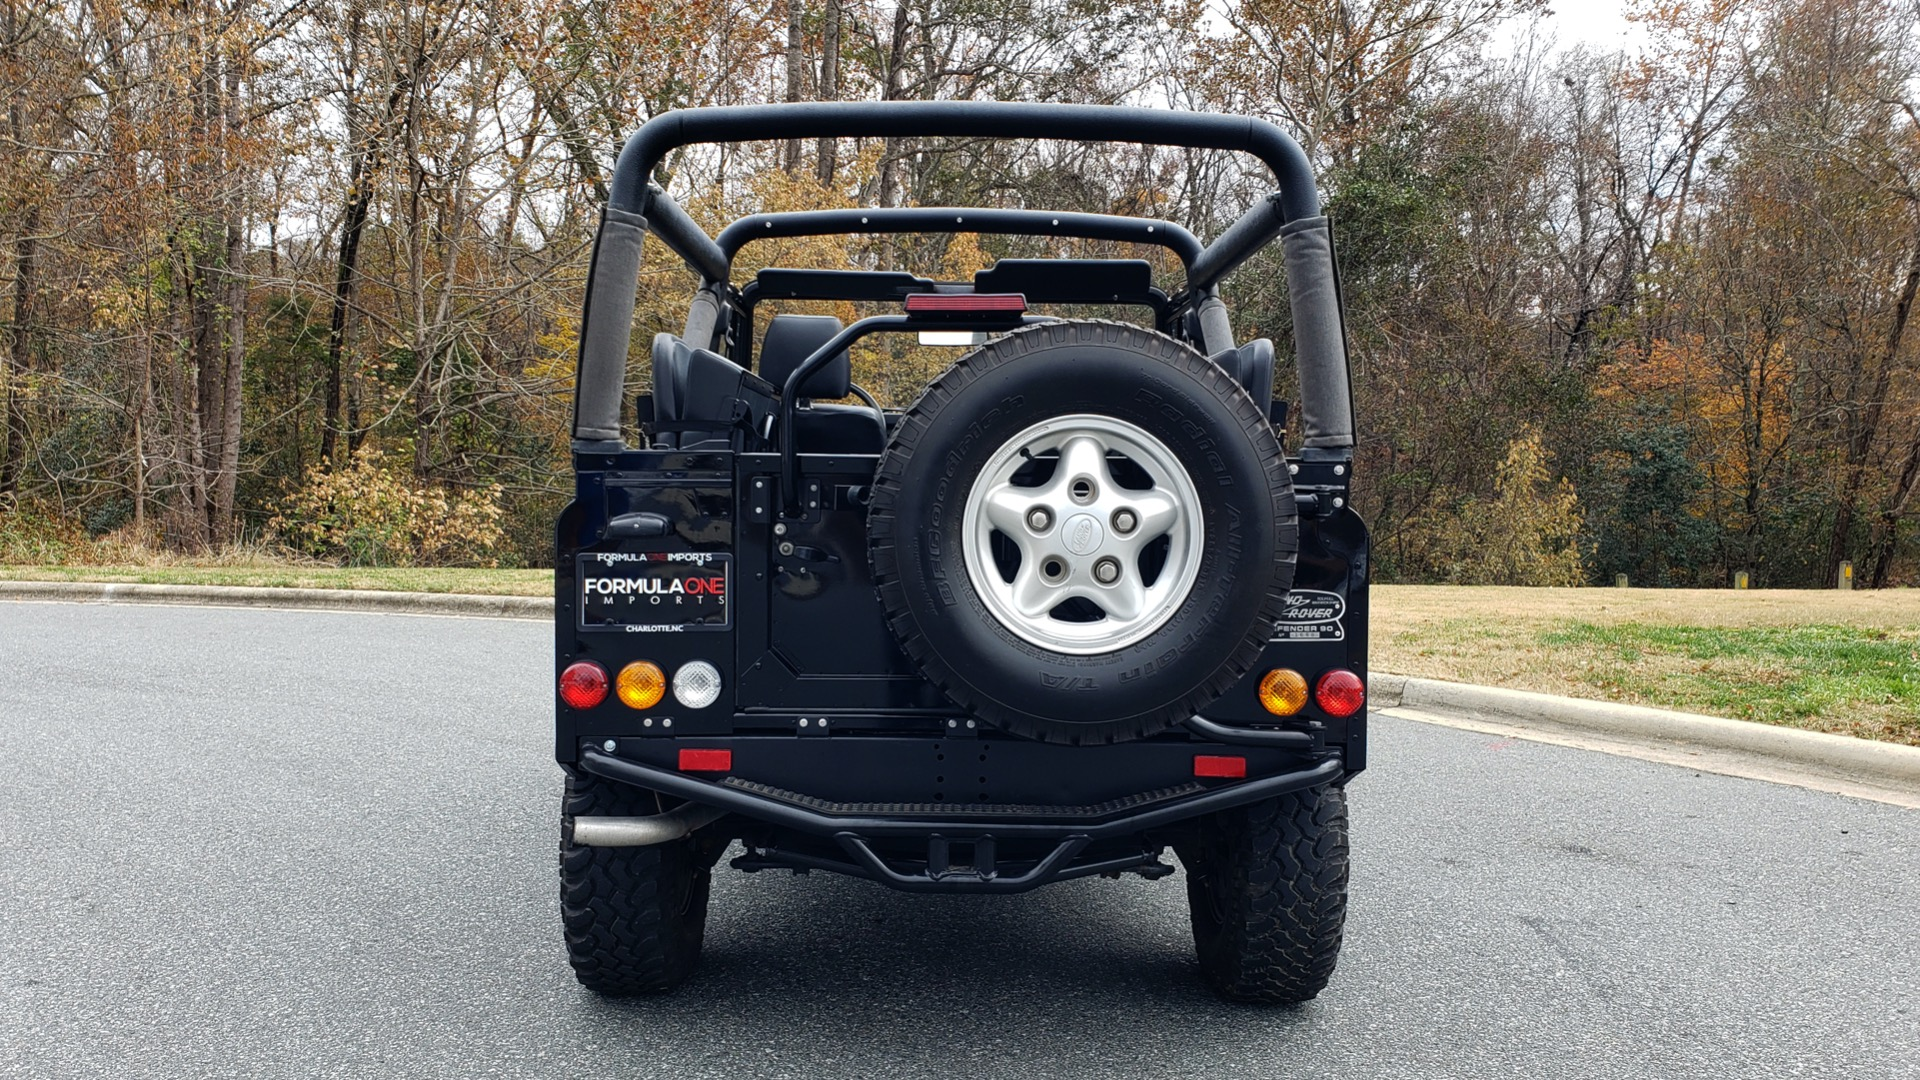 Used 1997 Land Rover DEFENDER 90 NAS SOFT-TOP 4x4 / LOW MILES / SUPER CLEAN for sale Sold at Formula Imports in Charlotte NC 28227 21